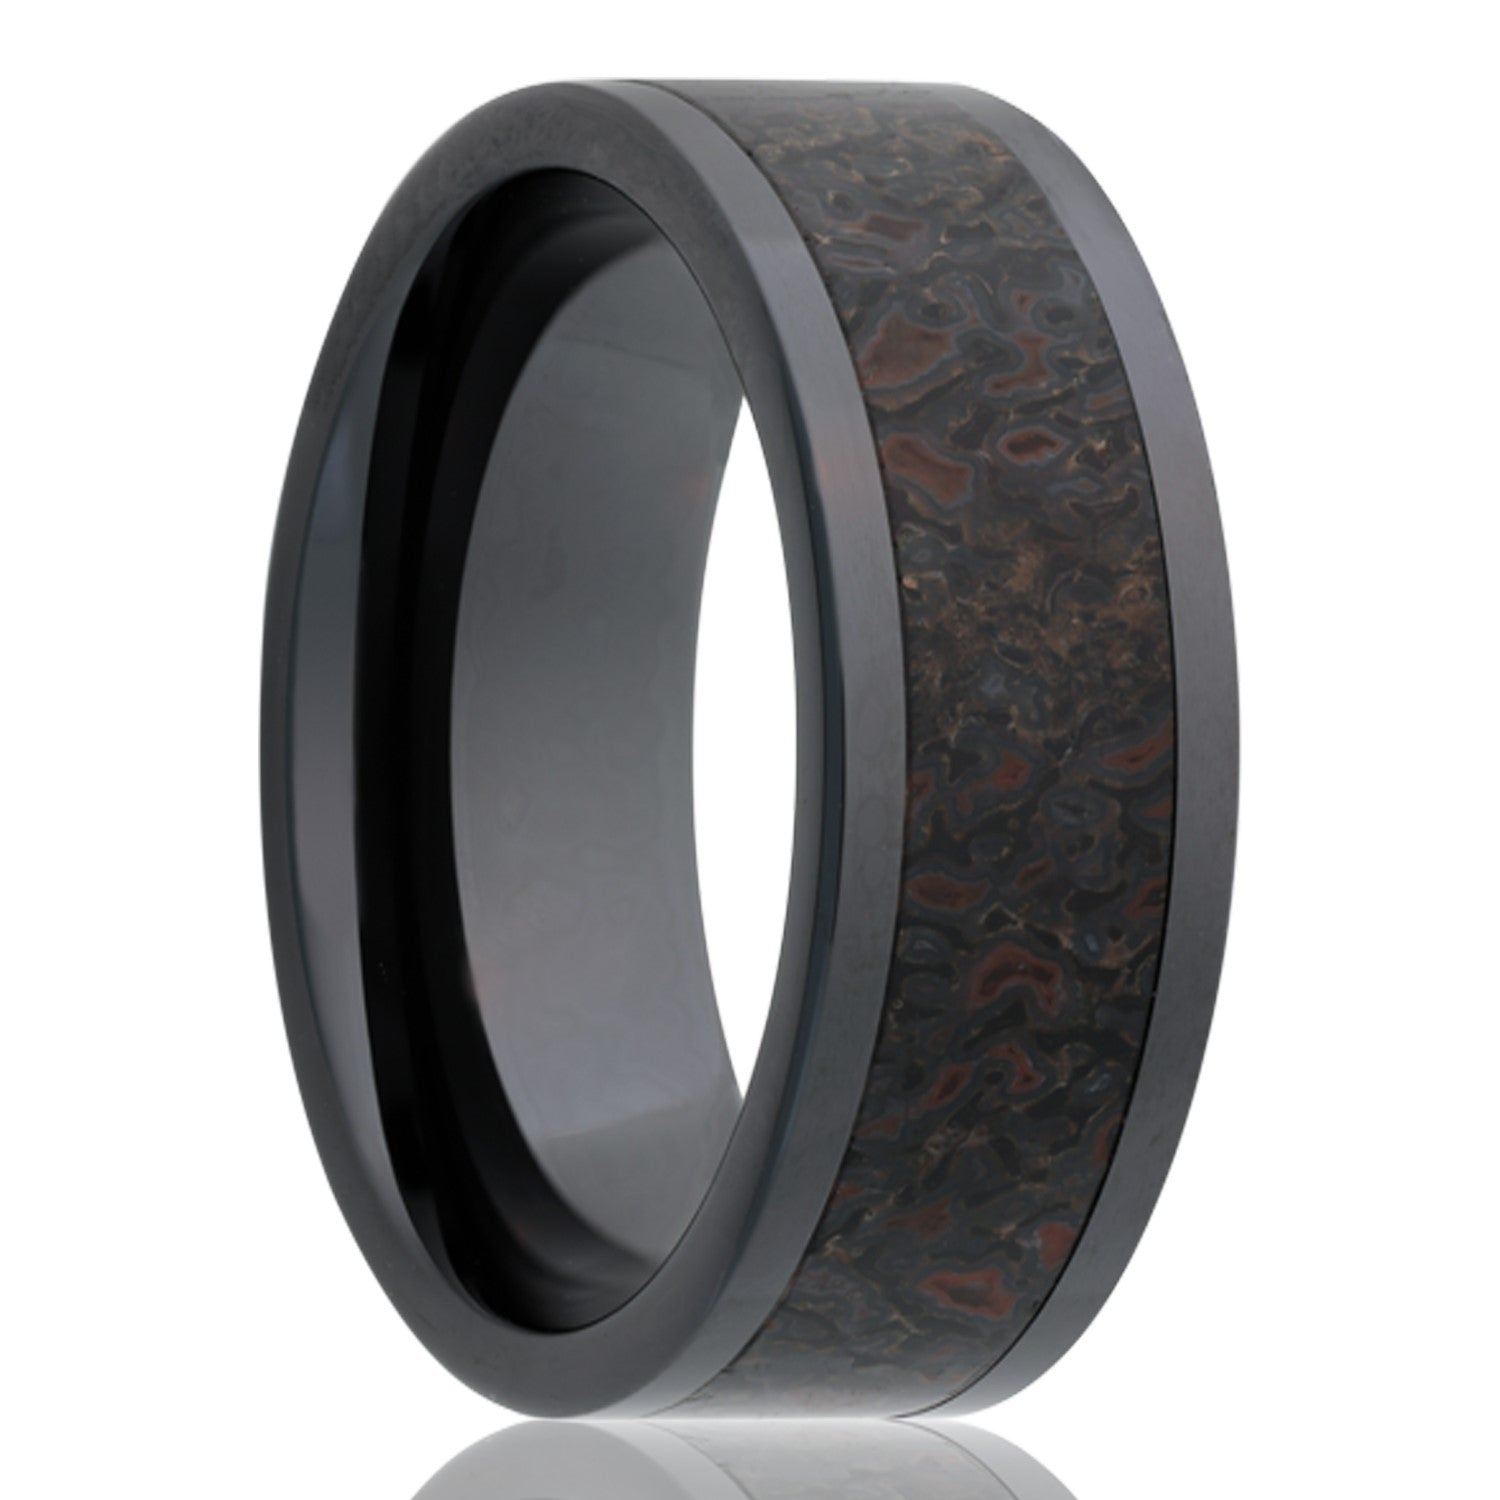 Black Ceramic Wedding Band. Dino Bone Inlay Ring. Unique Wedding Ring. tcrings.com